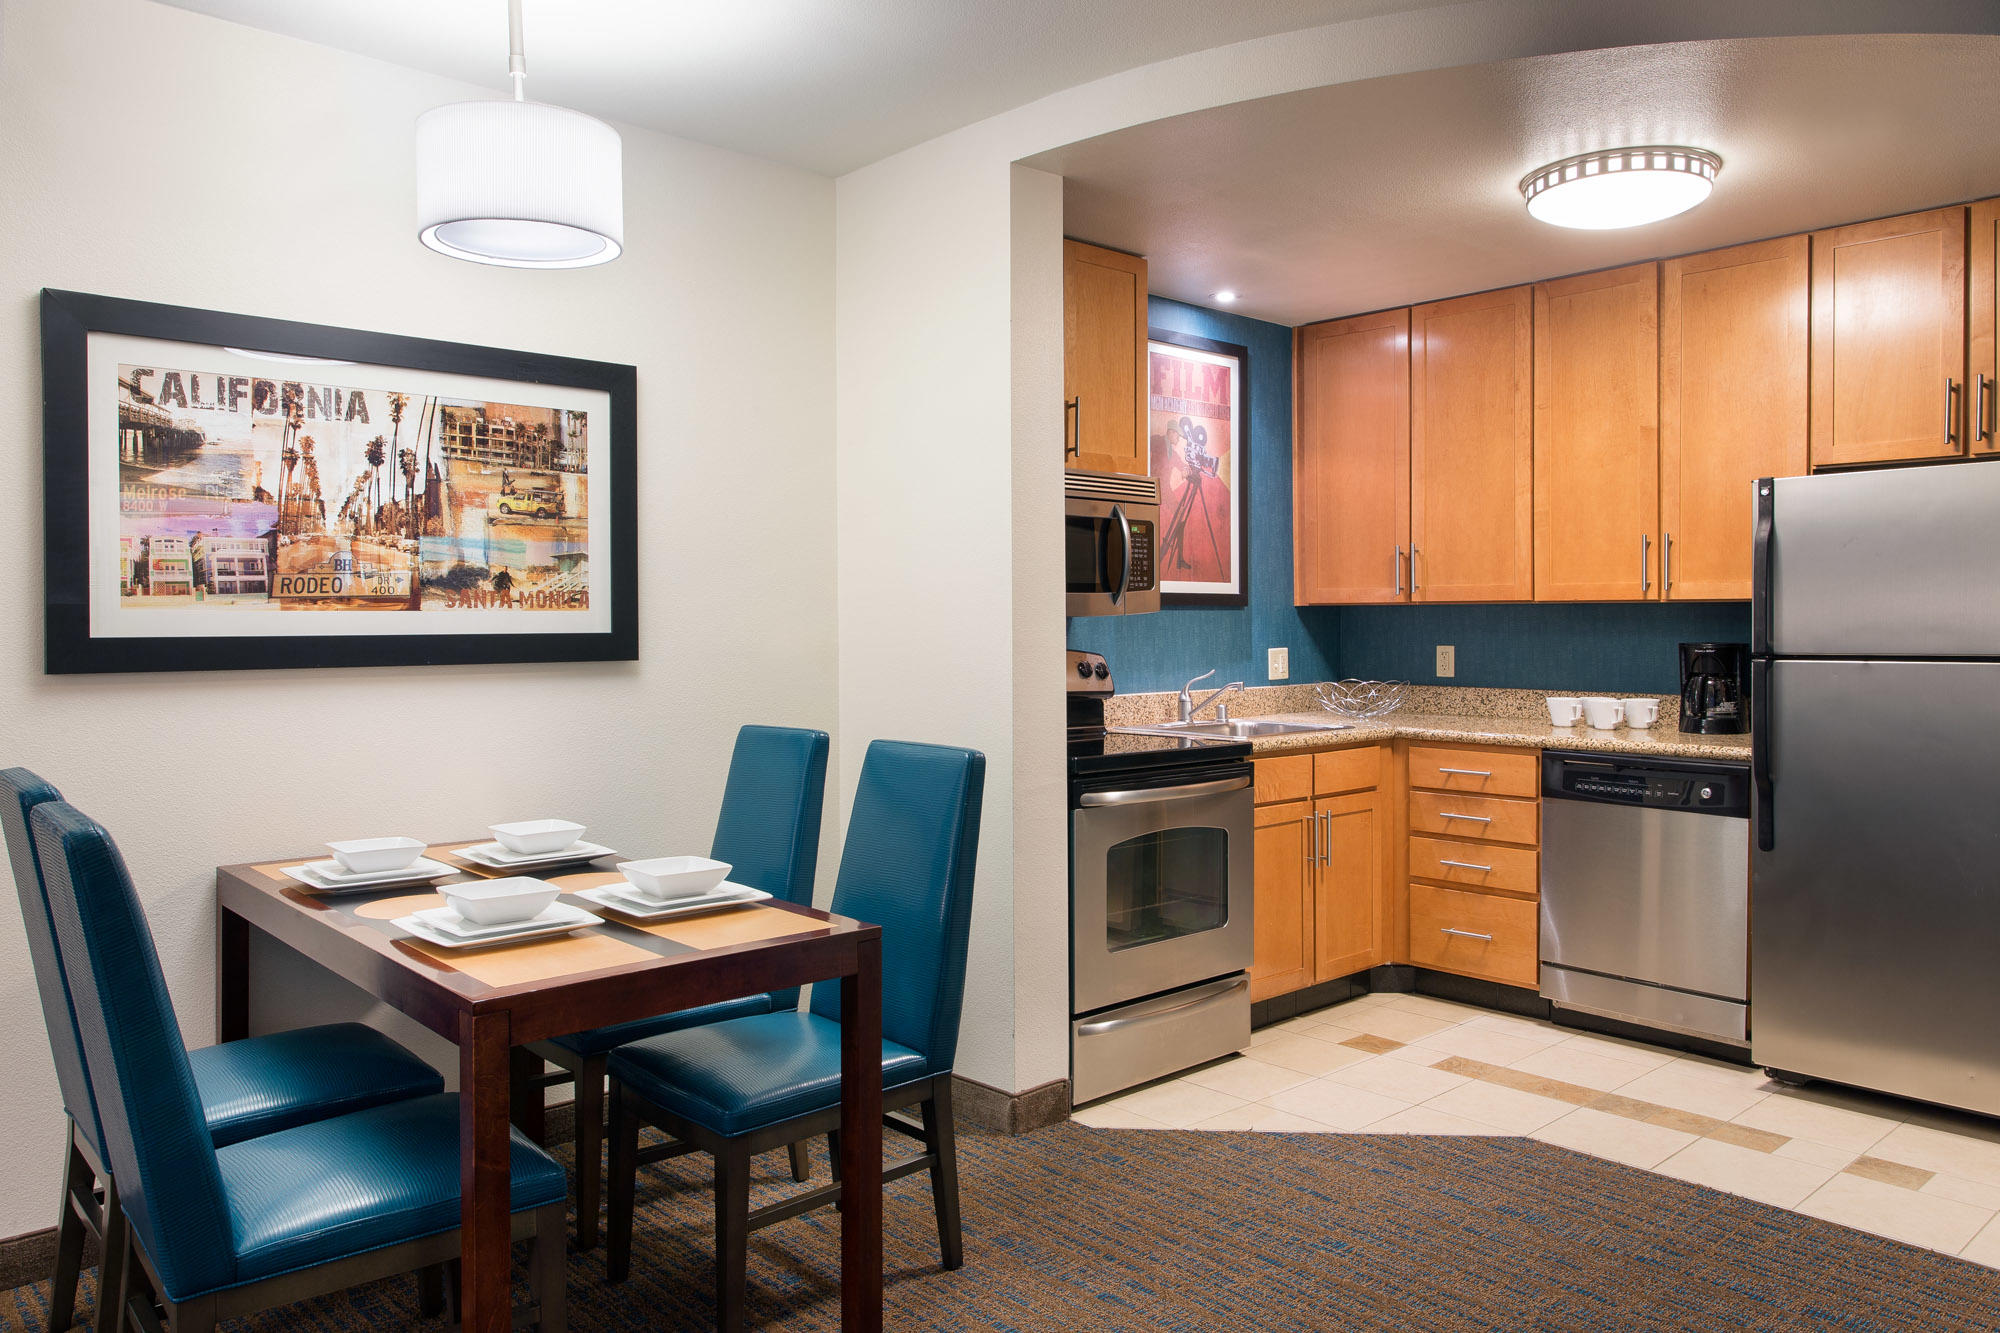 hotels with kitchen in los angeles gadgets residence inn by marriott burbank downtown at